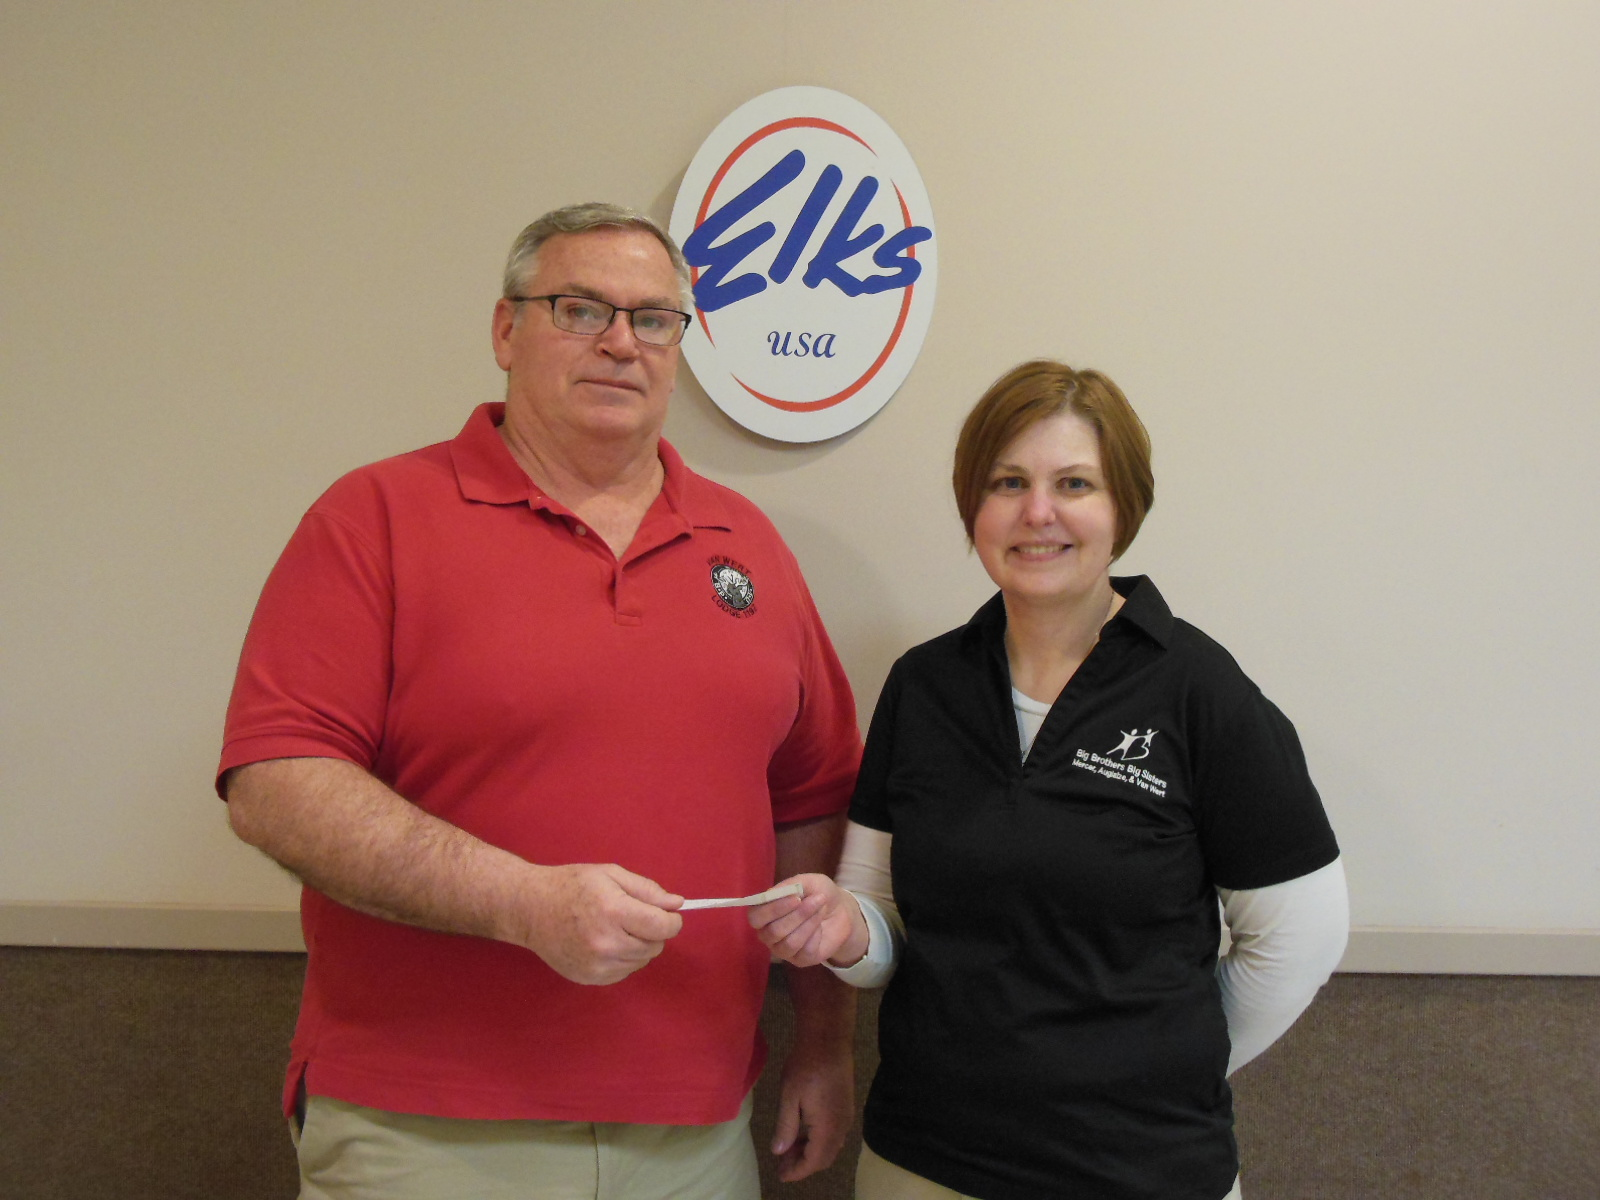 Pictured are, left to right, Keith A. Collins, Leading Knight presenting the check to Nancy Eberle of MAV Youth Mentoring Program.